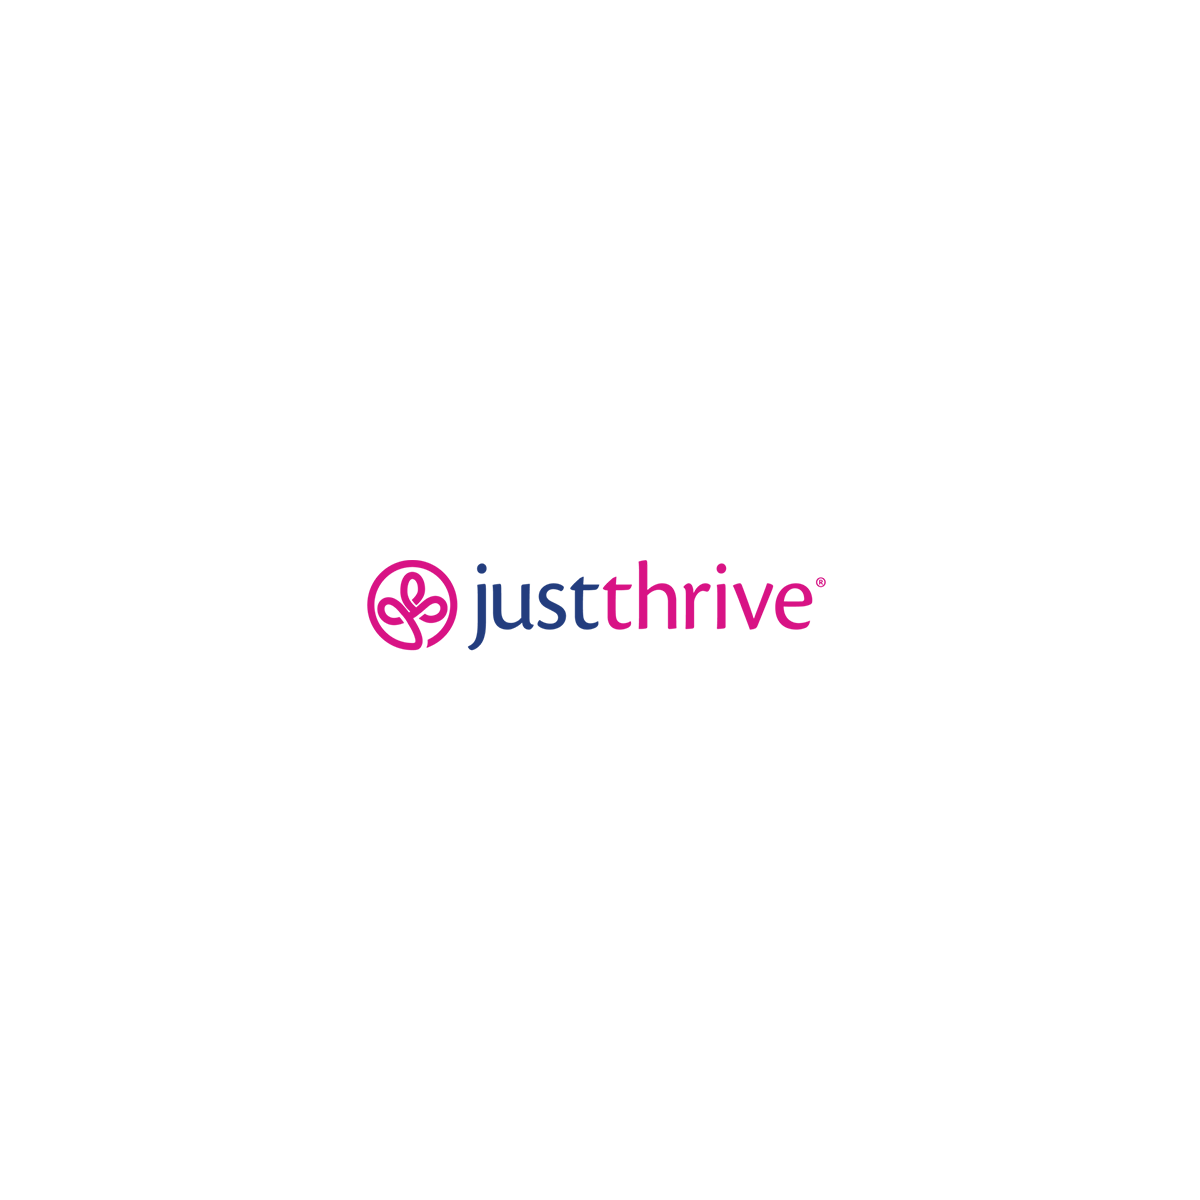 Just Thrive